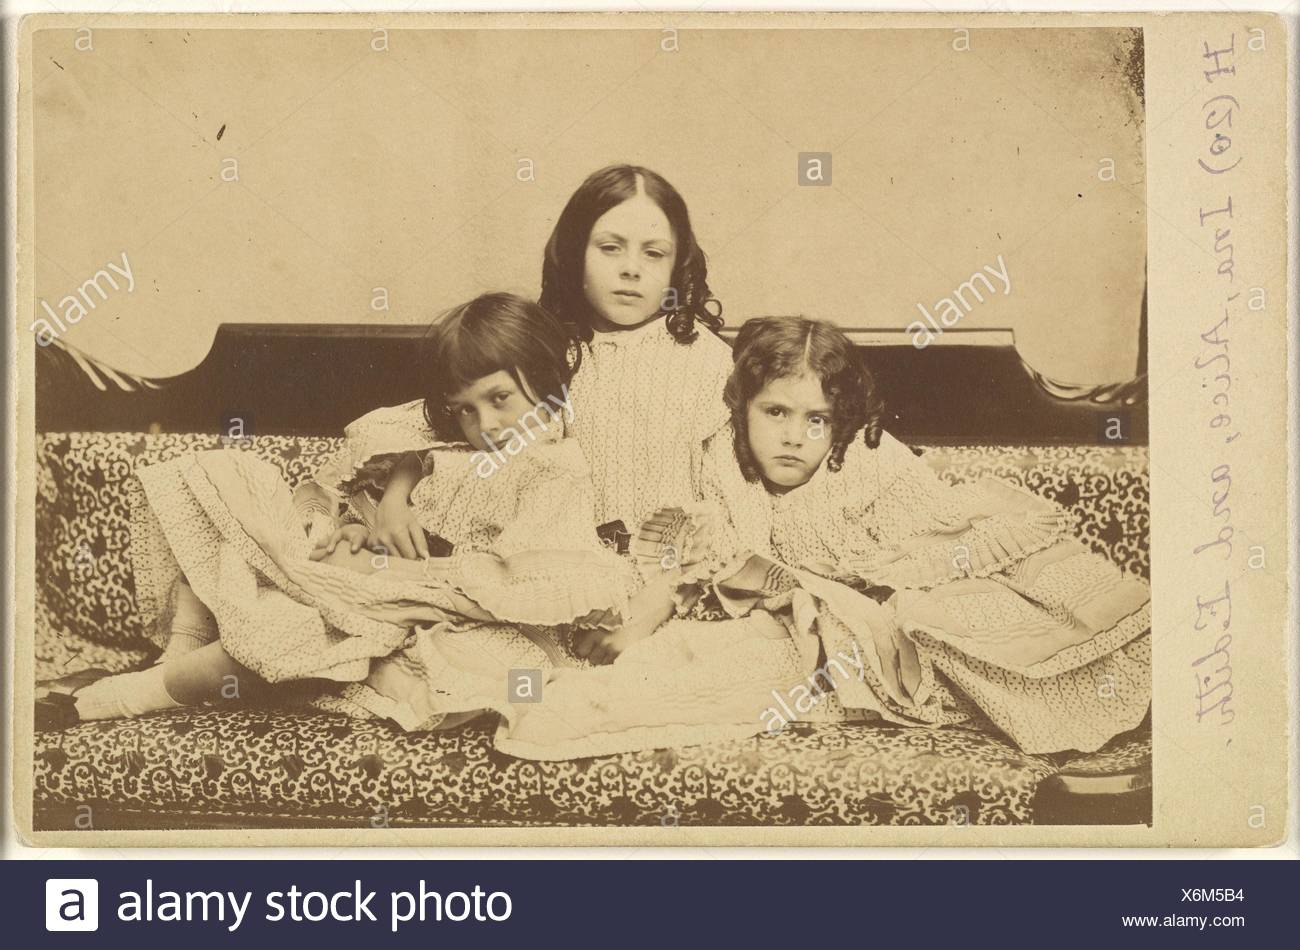 Edith, Ina and Alice Liddell on a Sofa. Artist: Lewis Carroll (British, Daresbury, Cheshire 1832-1898 Guildford); Person in Photograph: Person in - Stock Image